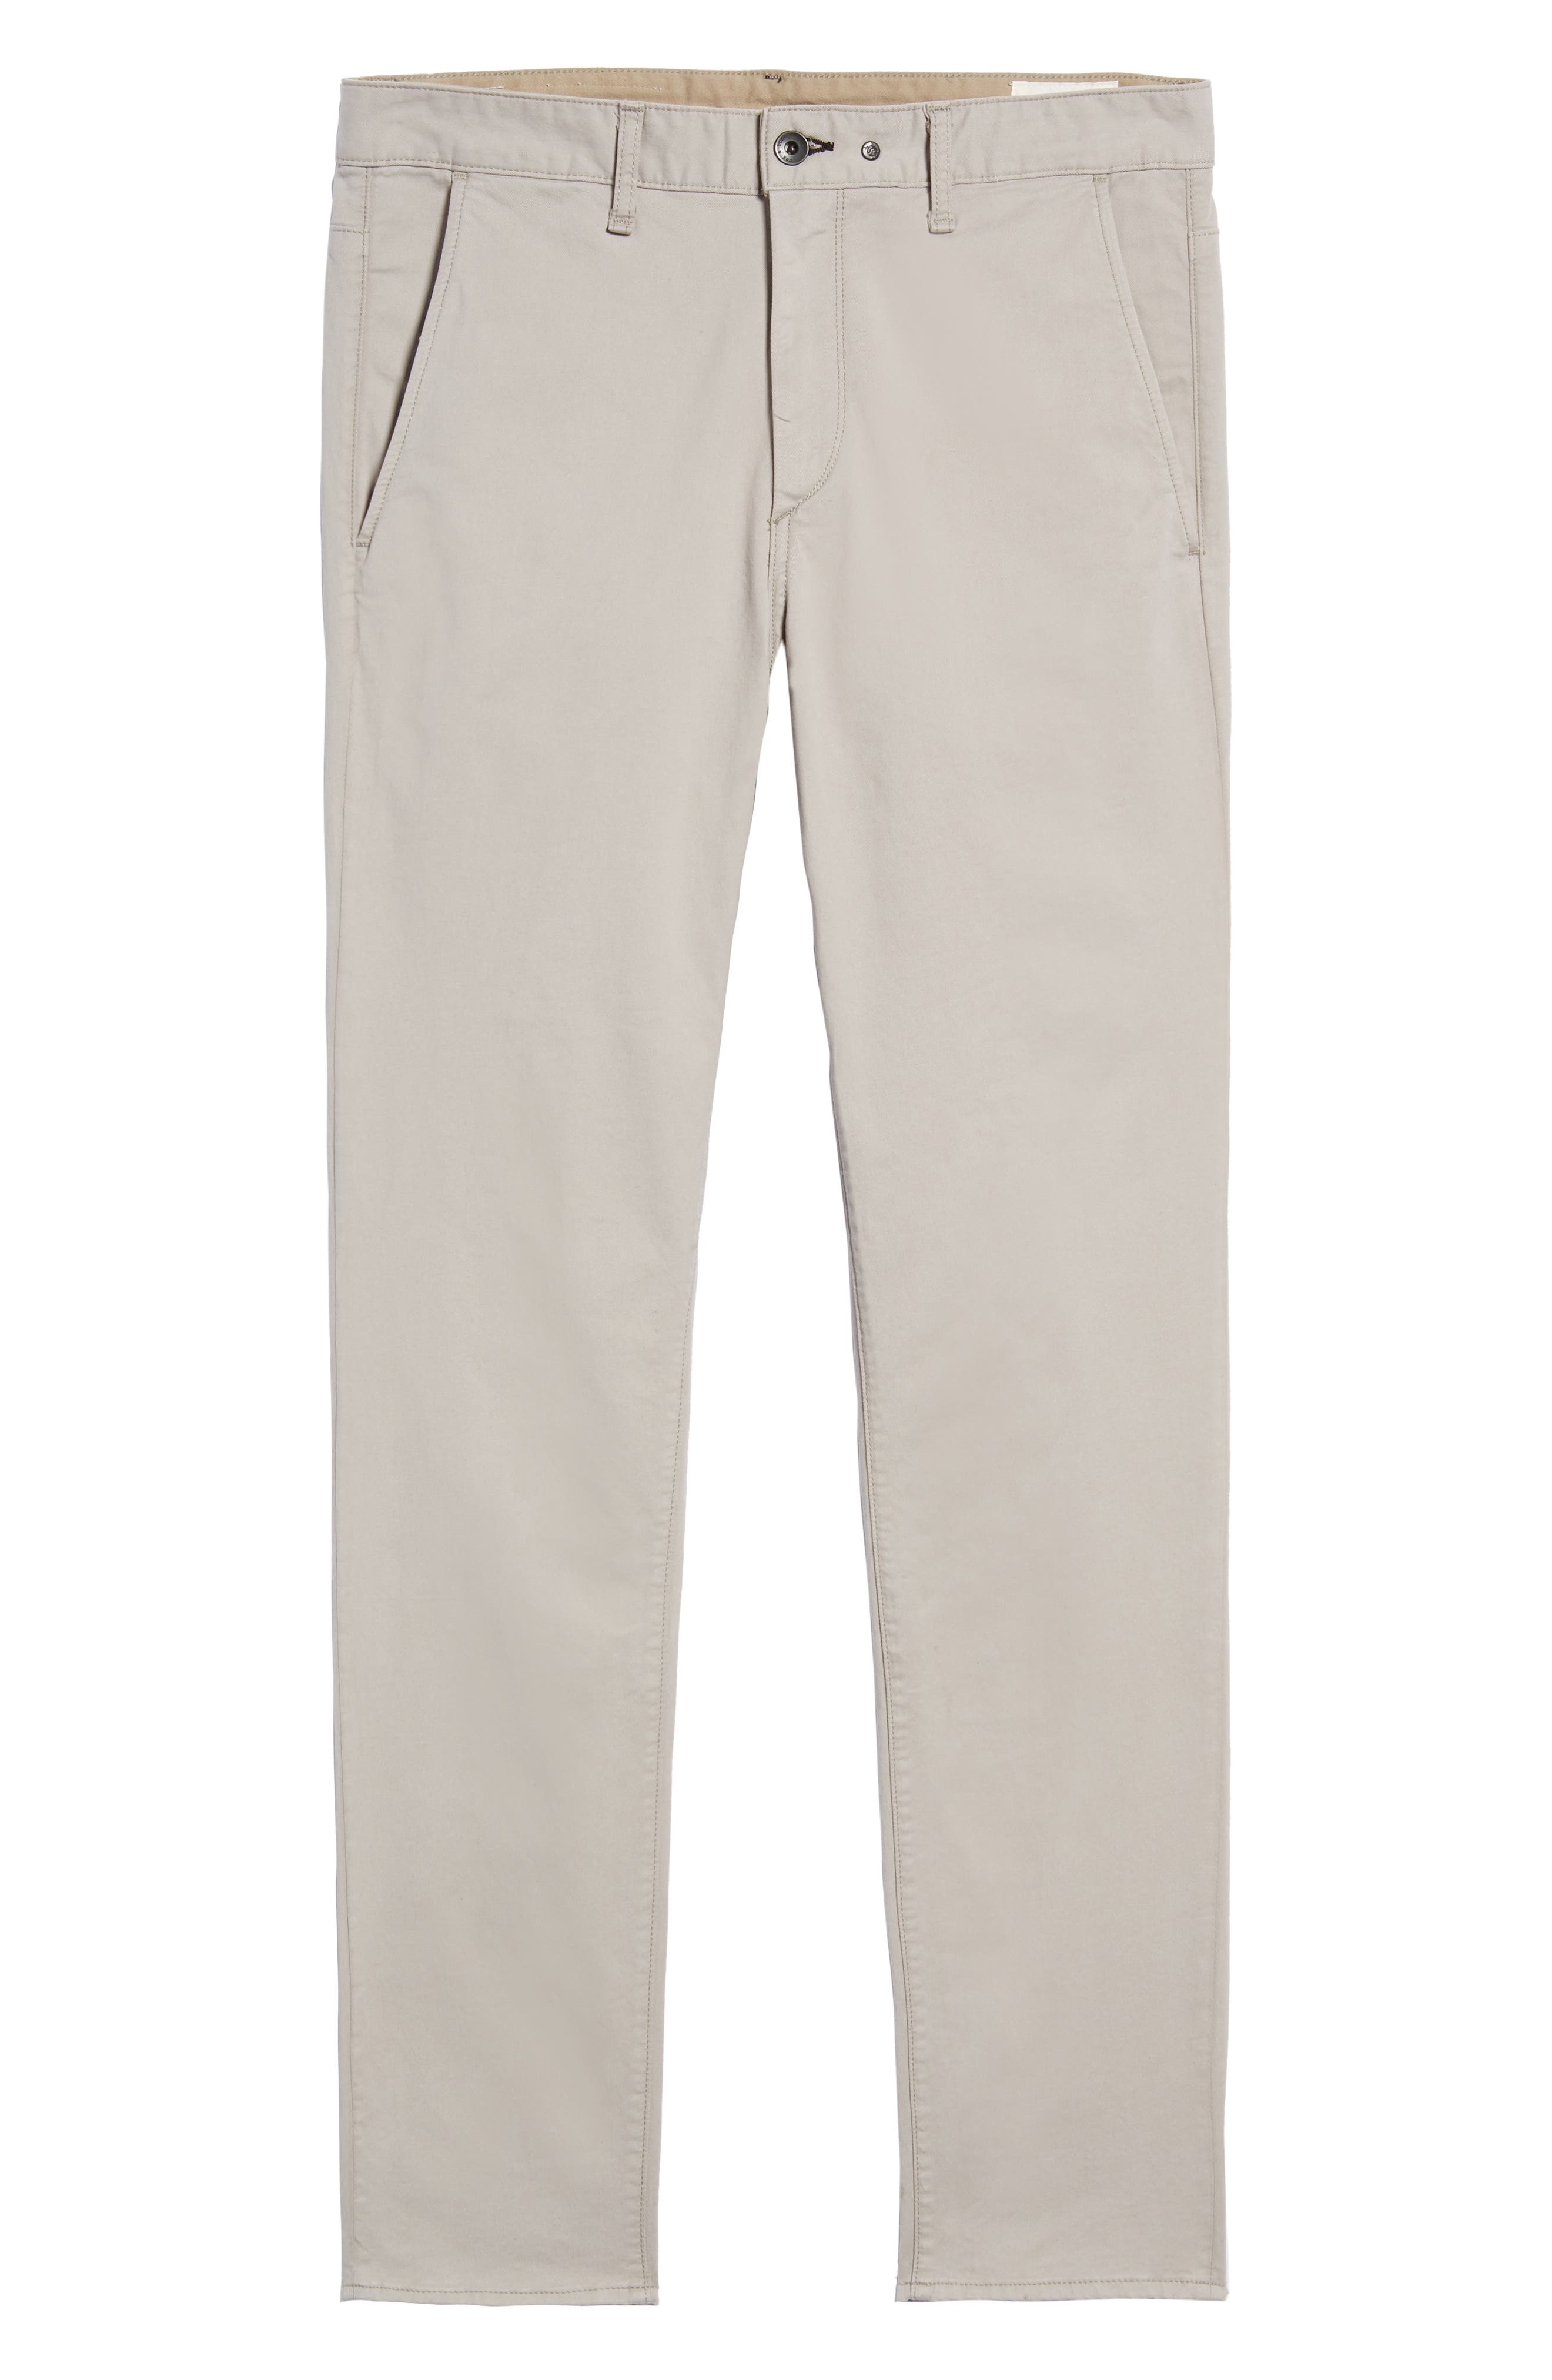 Fit 2 Classic Chinos,                             Alternate thumbnail 6, color,                             LIGHT GREY